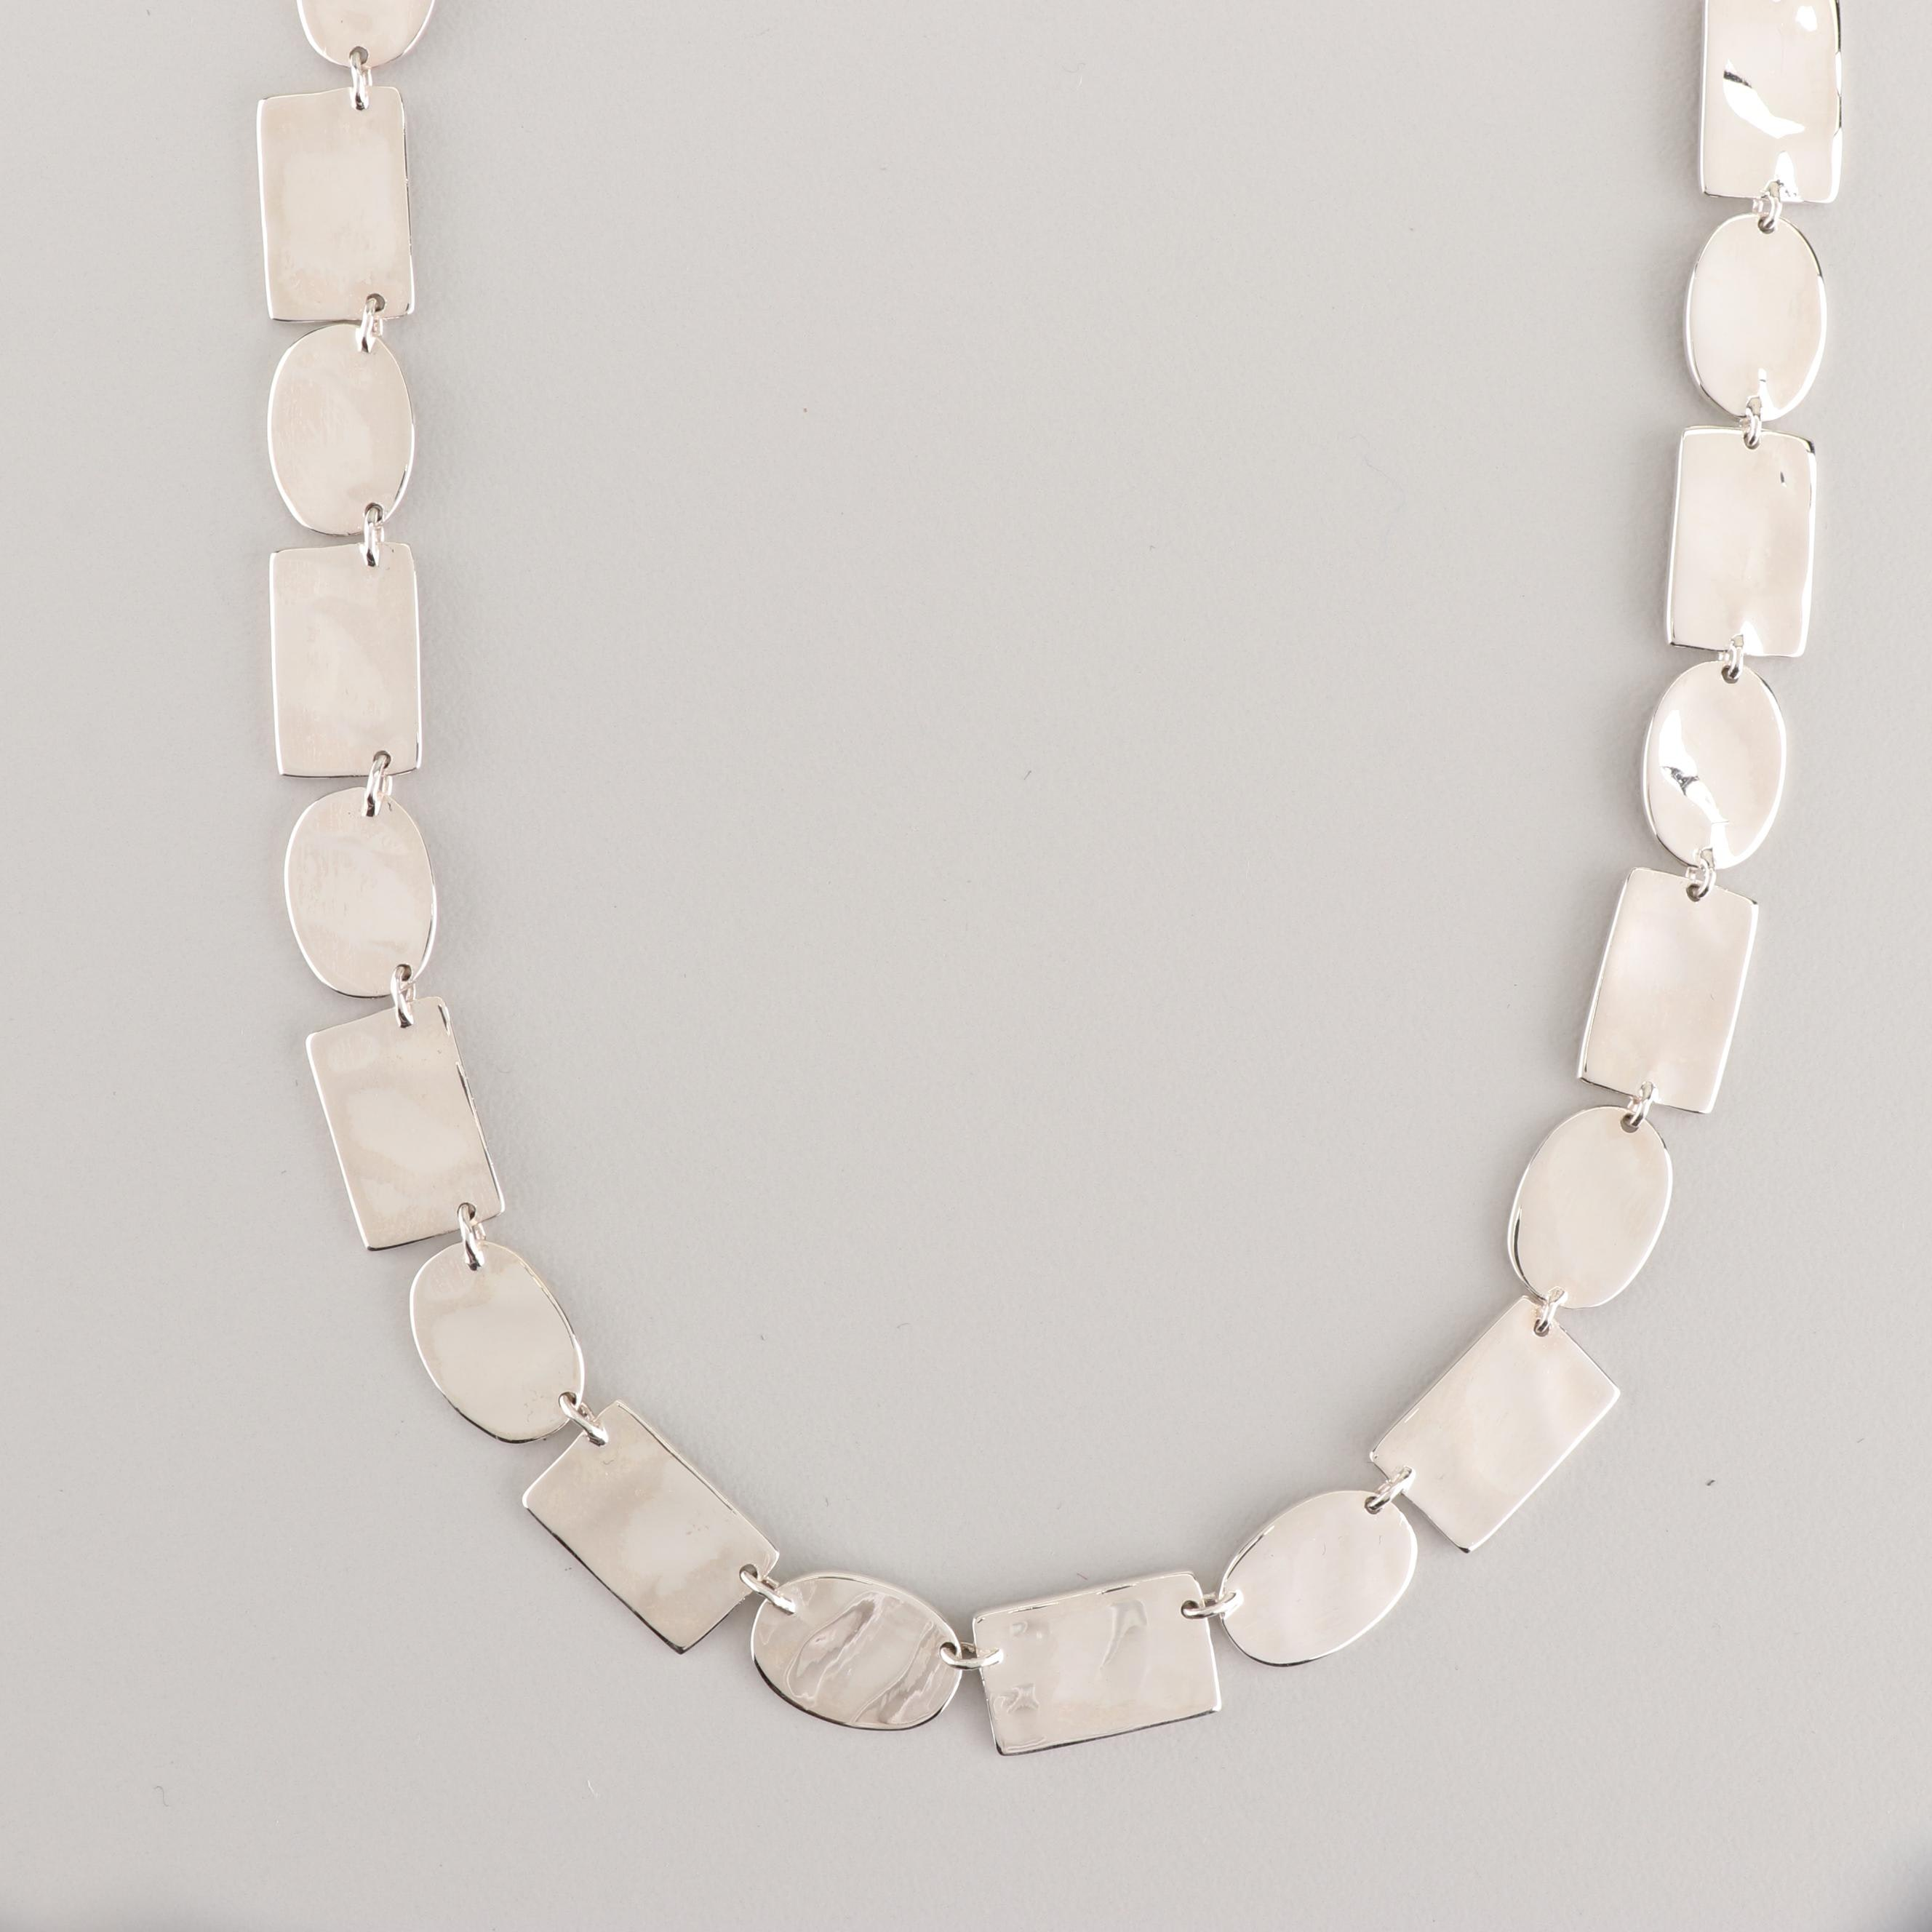 Ippolita Sterling Silver Necklace